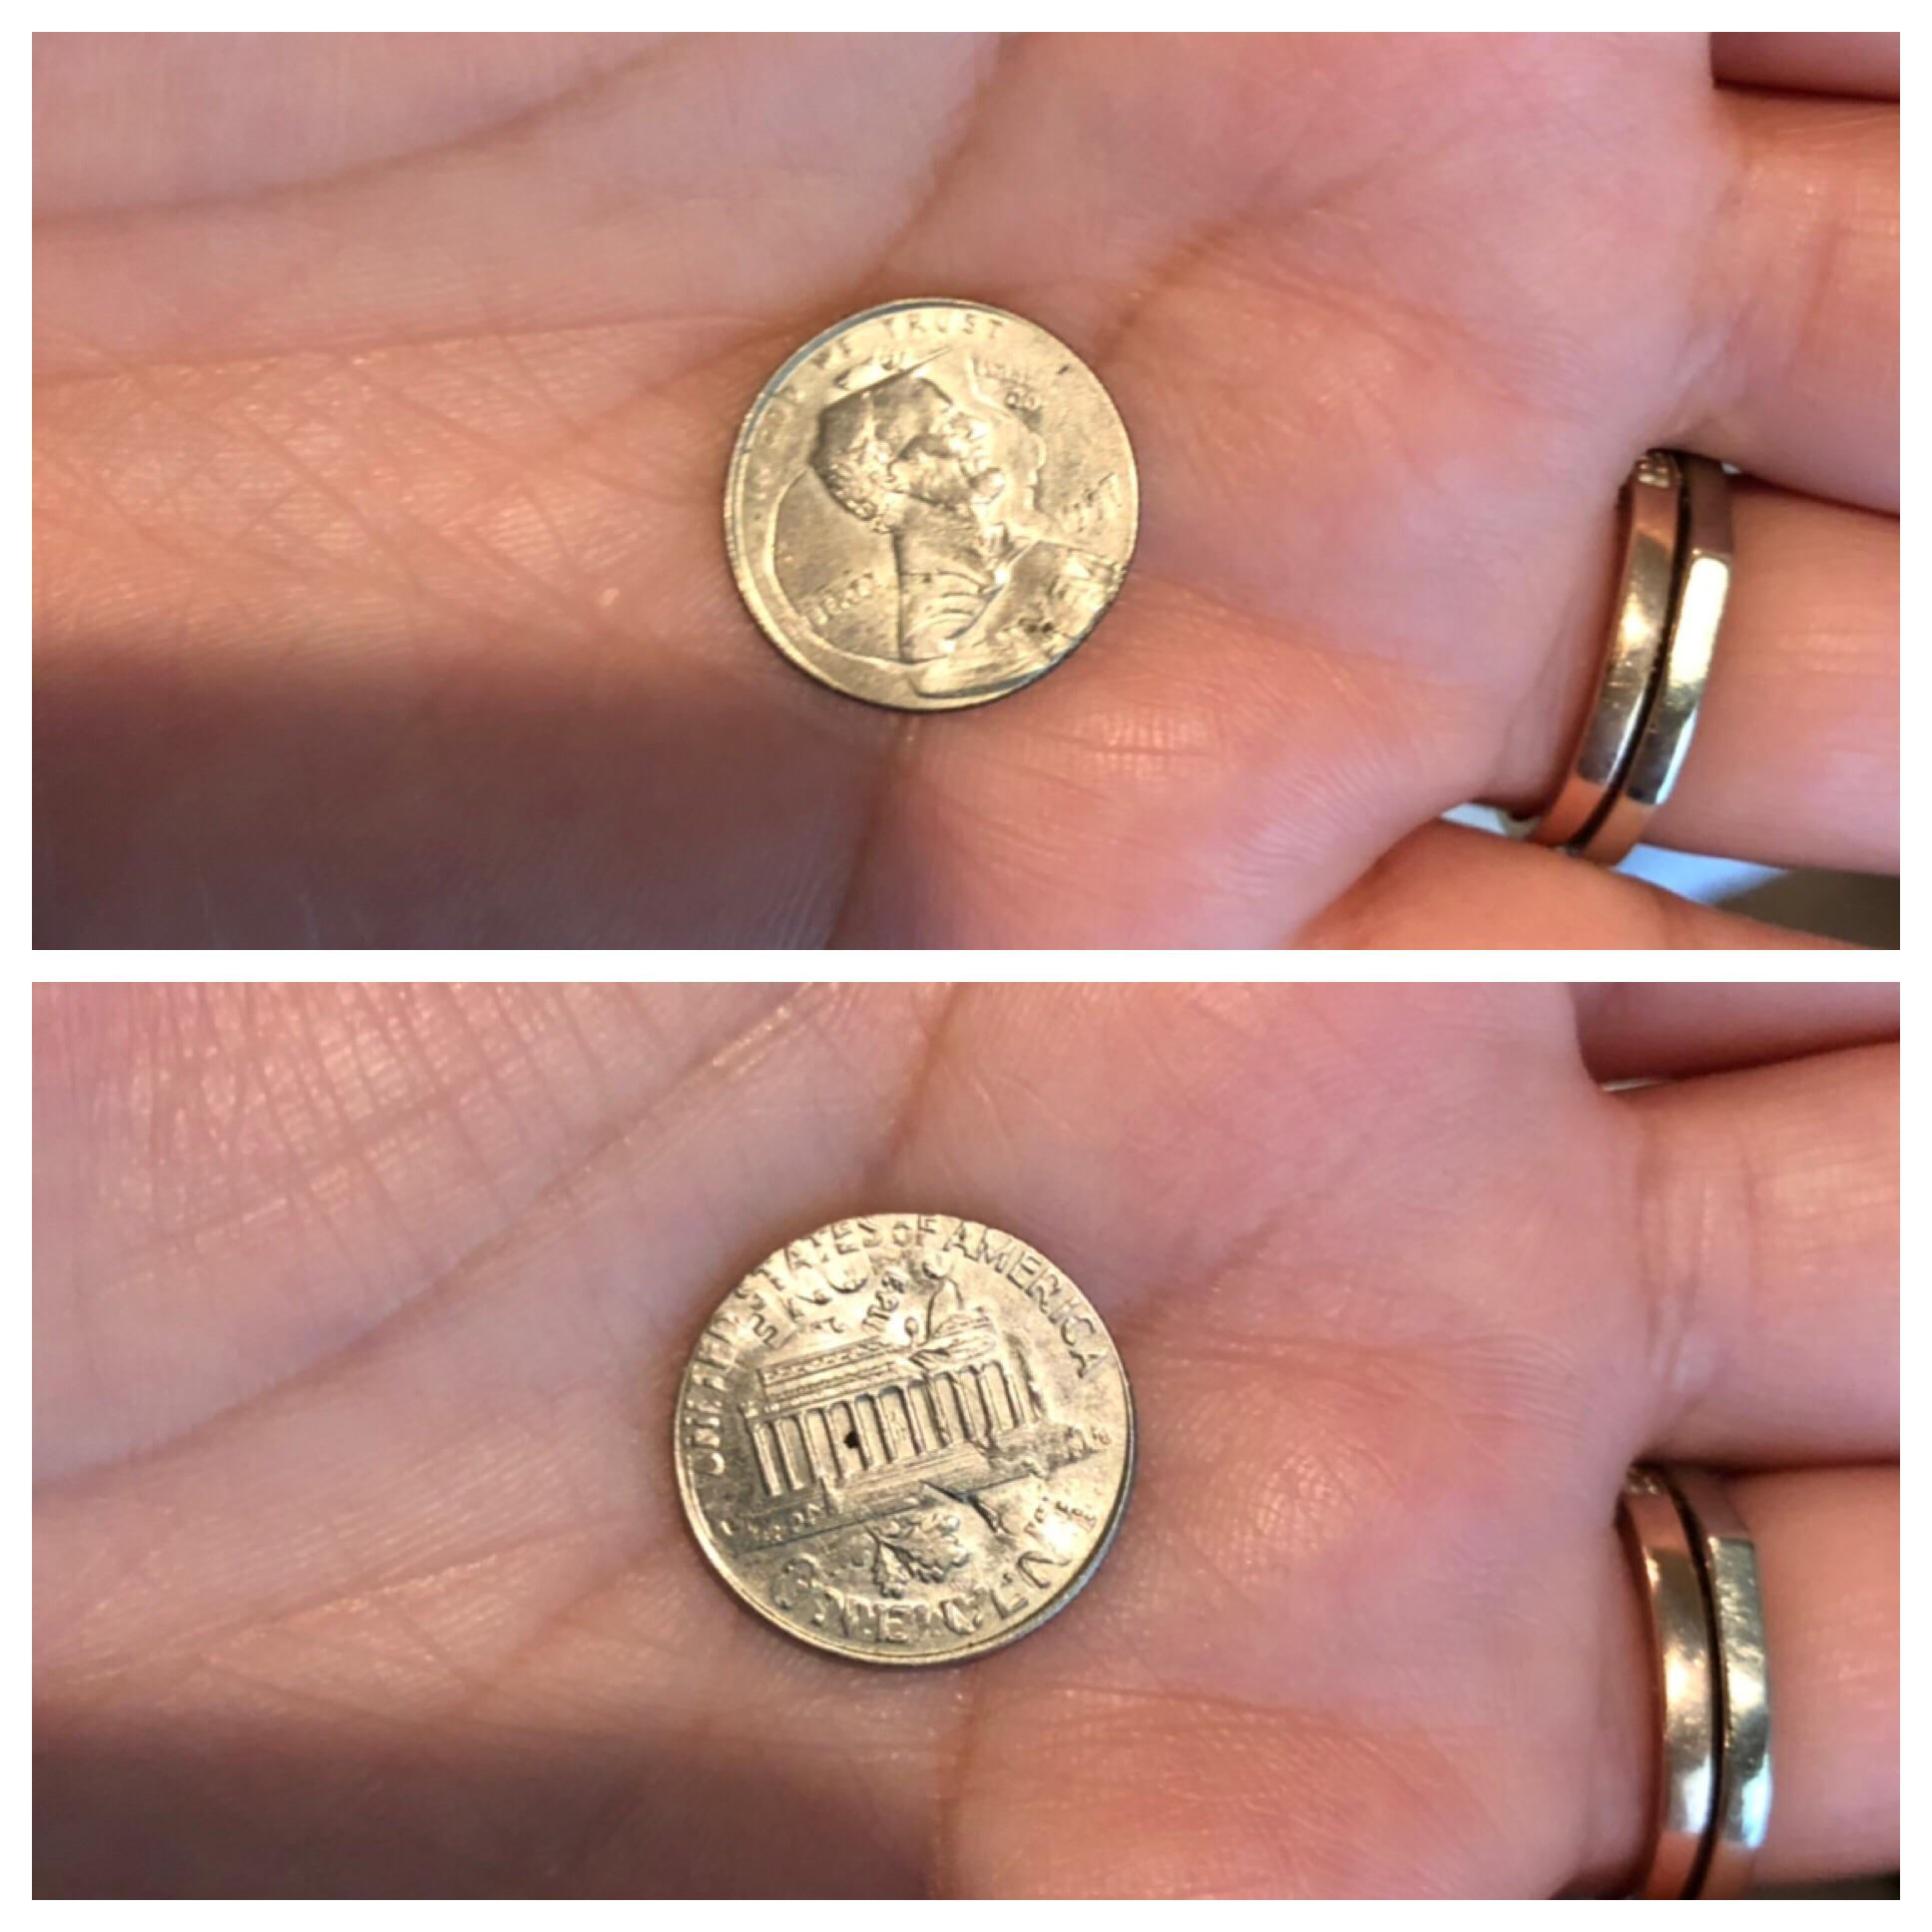 Double Printed Coin Dime Penny Anyone Know Anything About